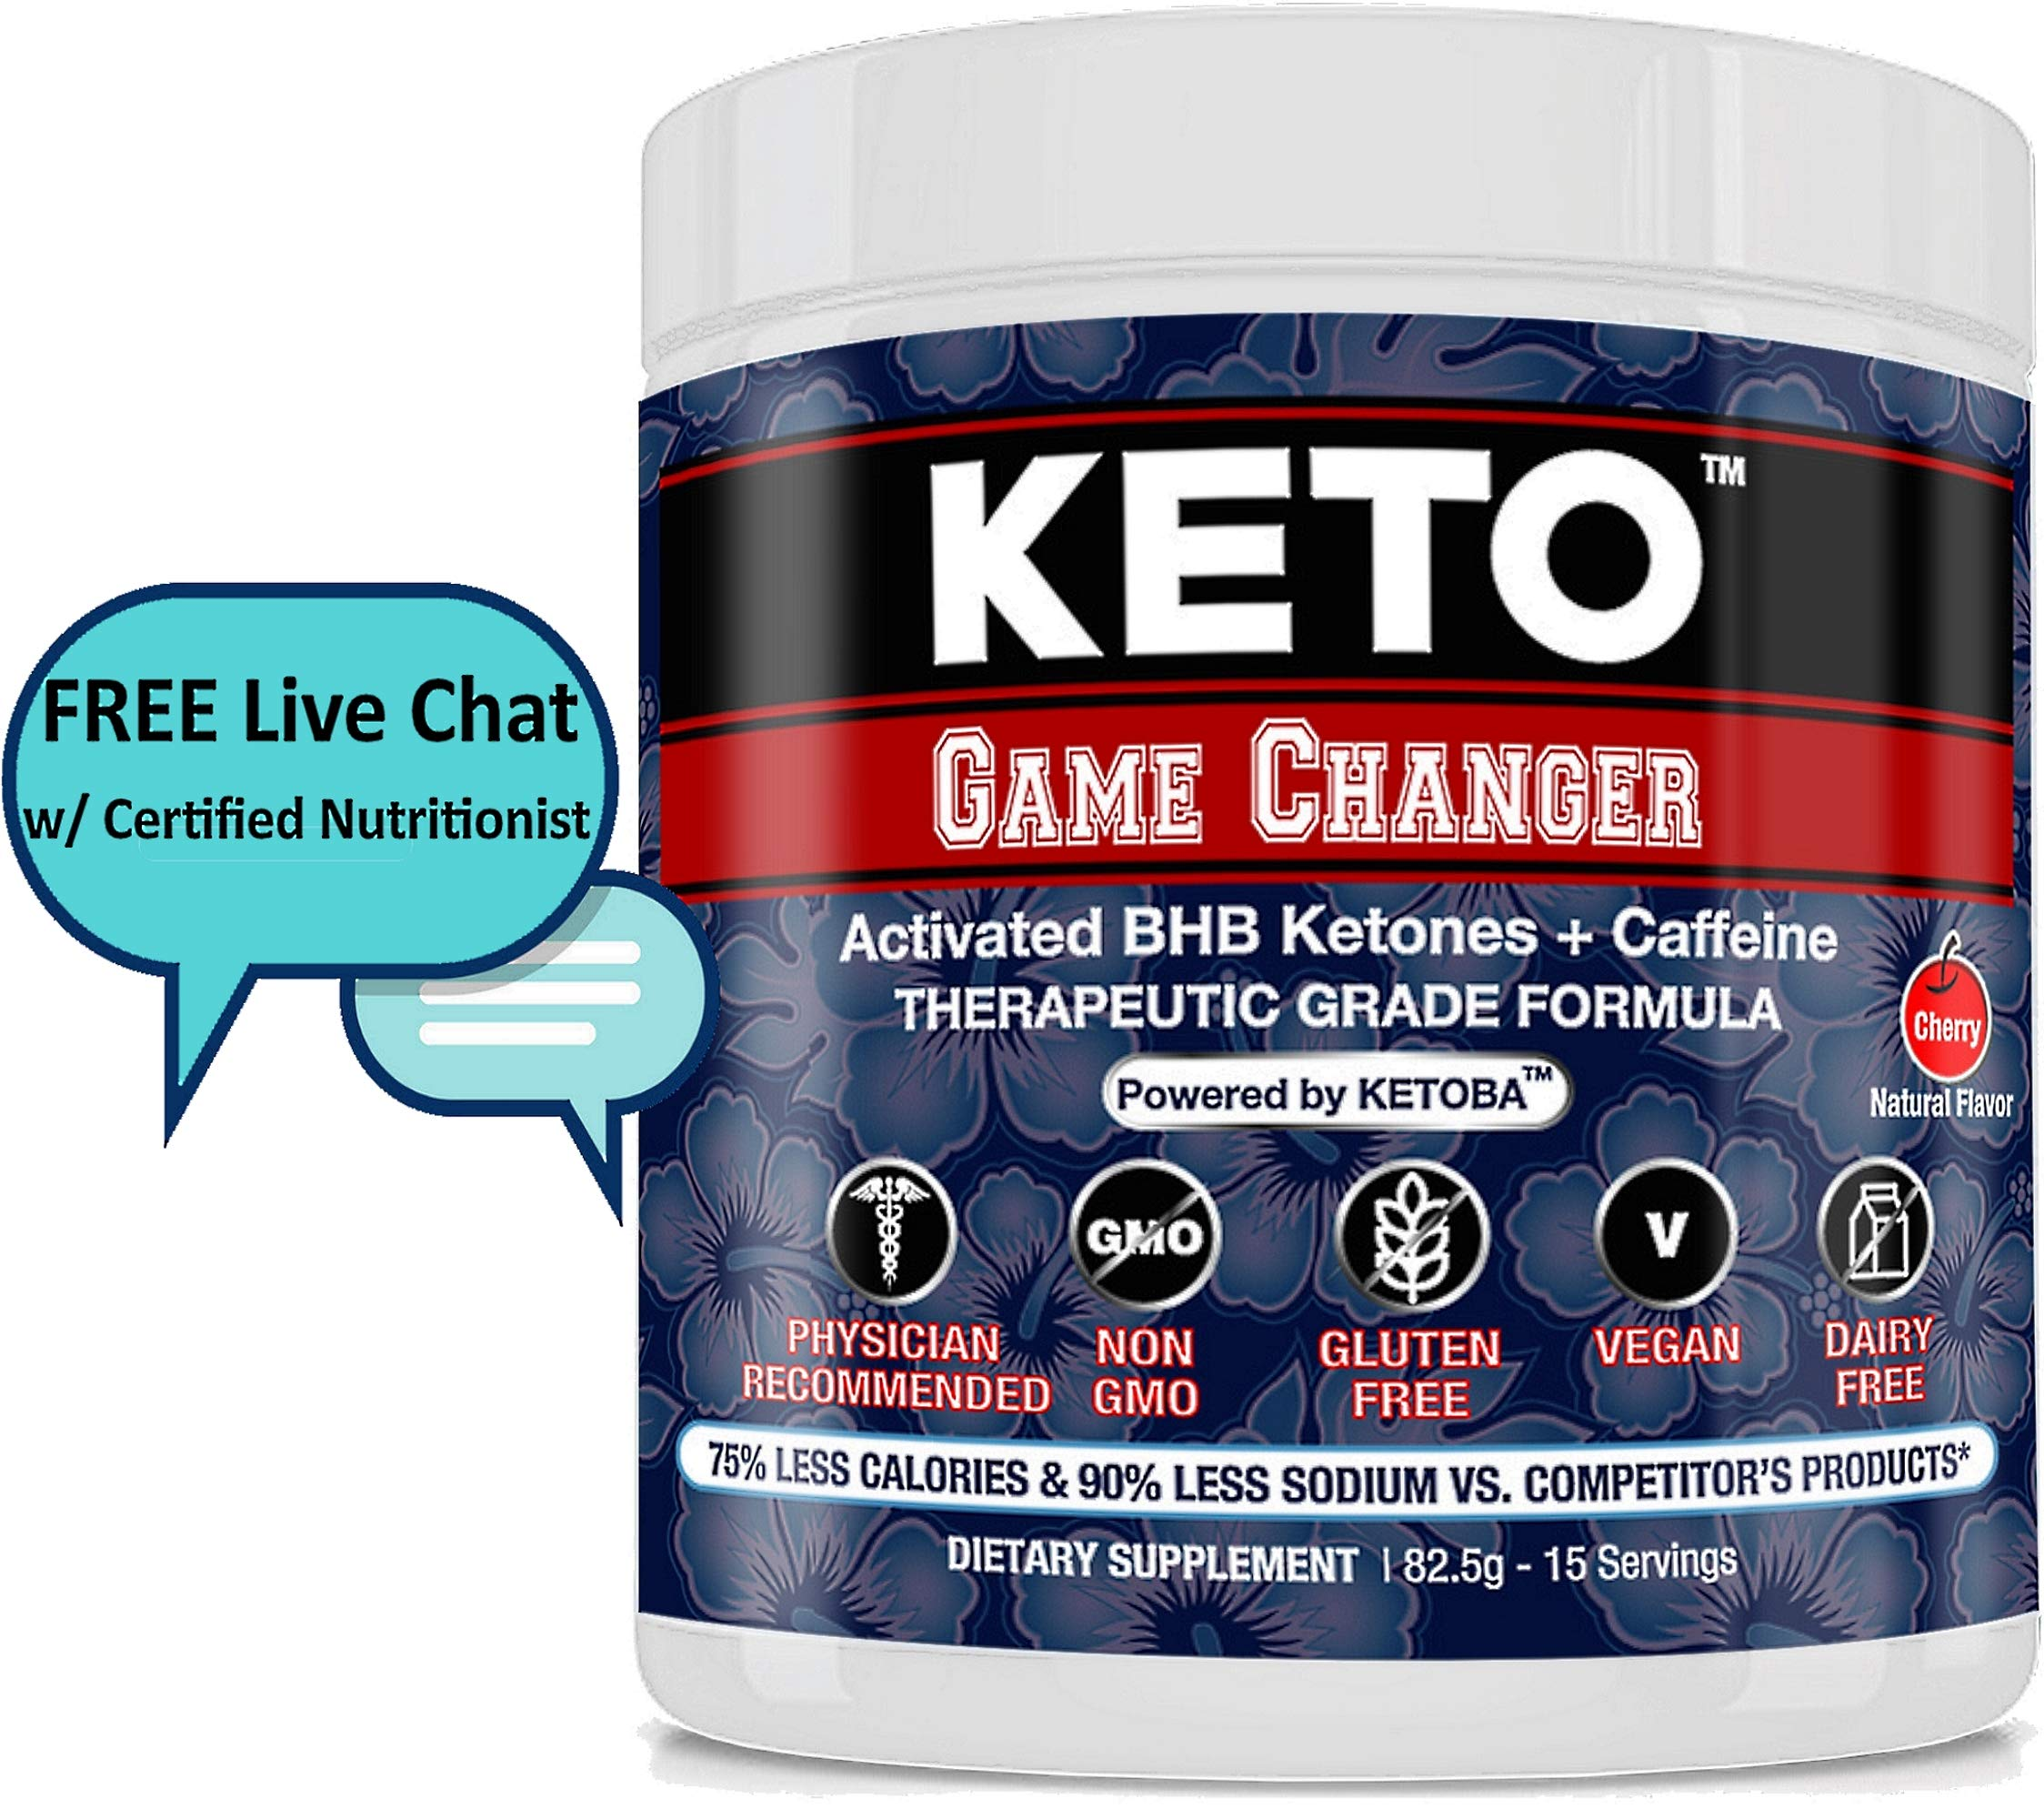 BHB KETO Diet & Pre-Workout Exogenous Ketones Powder All Natural+Free eBook&Chat: Drink/Shakes/Snack/Mix | Weight Loss/Energy/Low Carb/NO Keto Flu | Paleo,Atkin,Diabete-Ketogenic Drive,Ketosis Booster